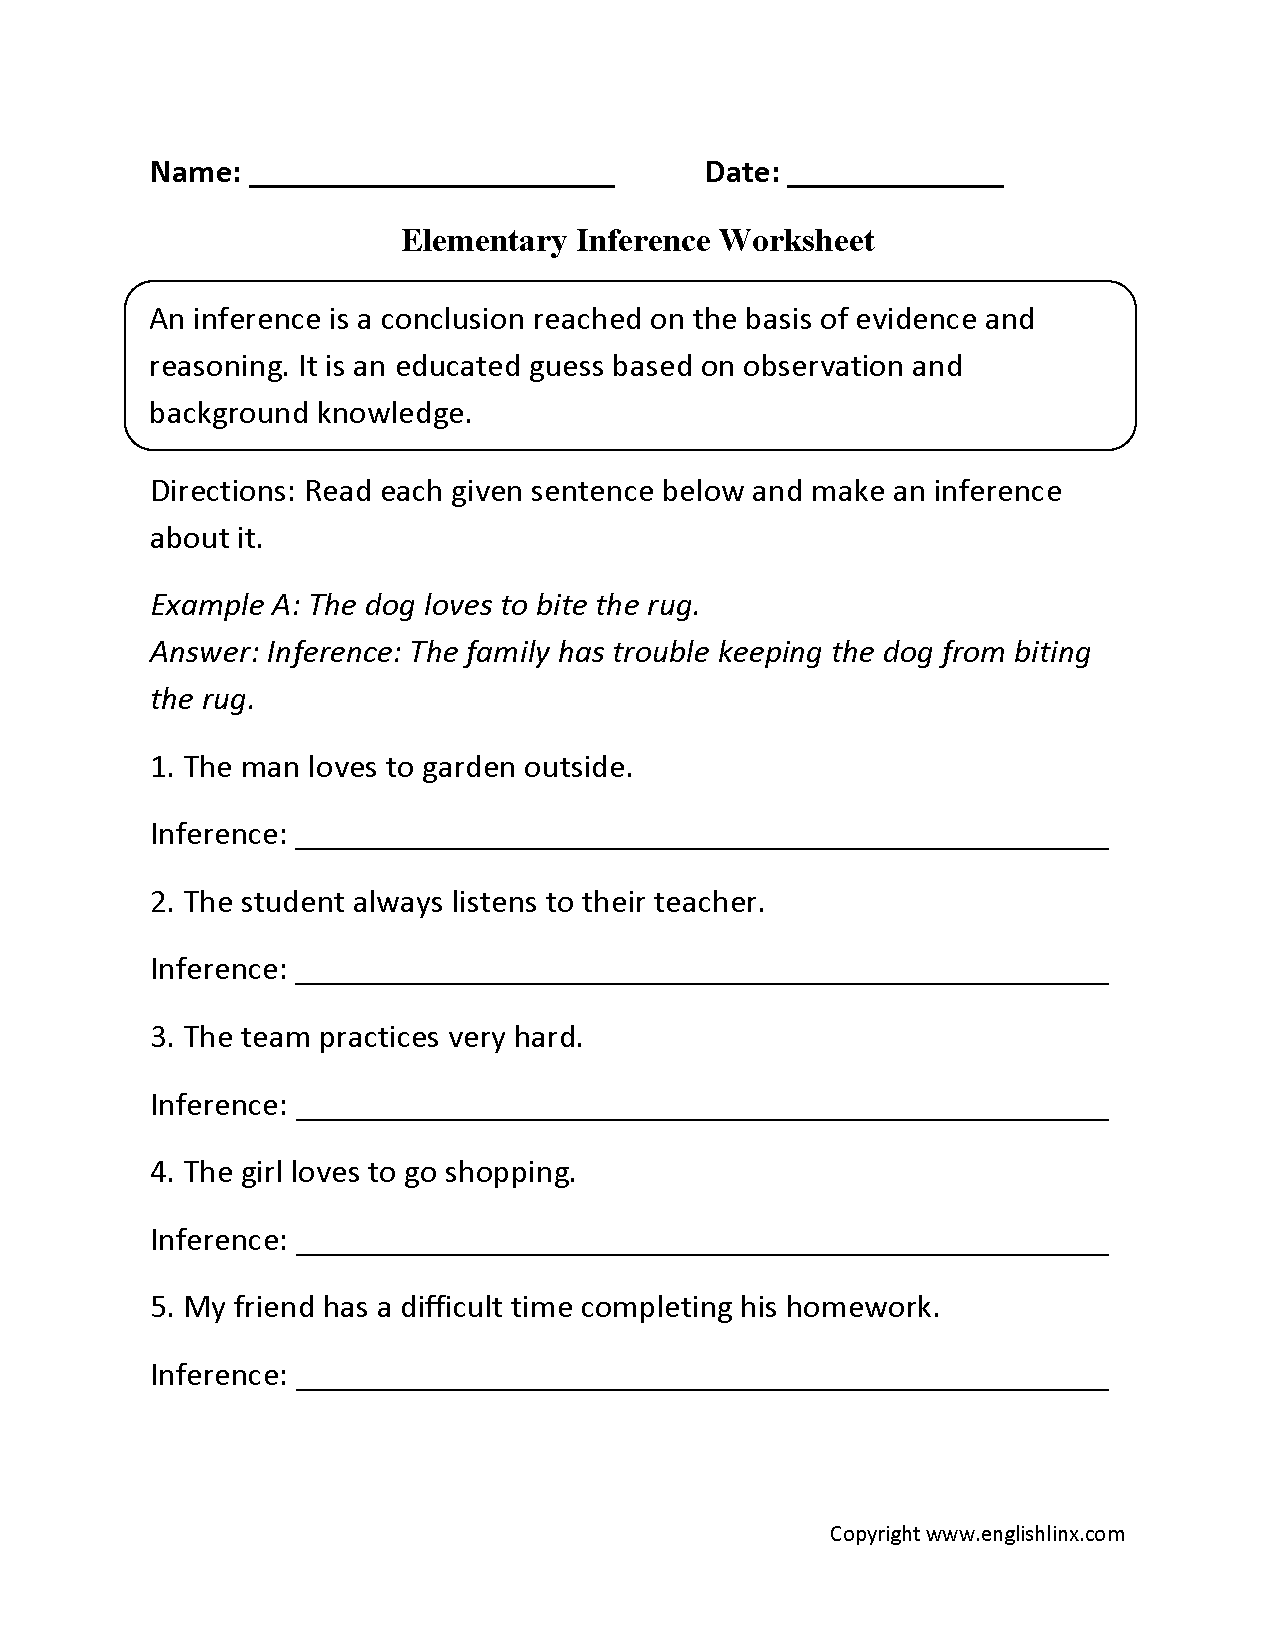 Elementary Inference Worksheets